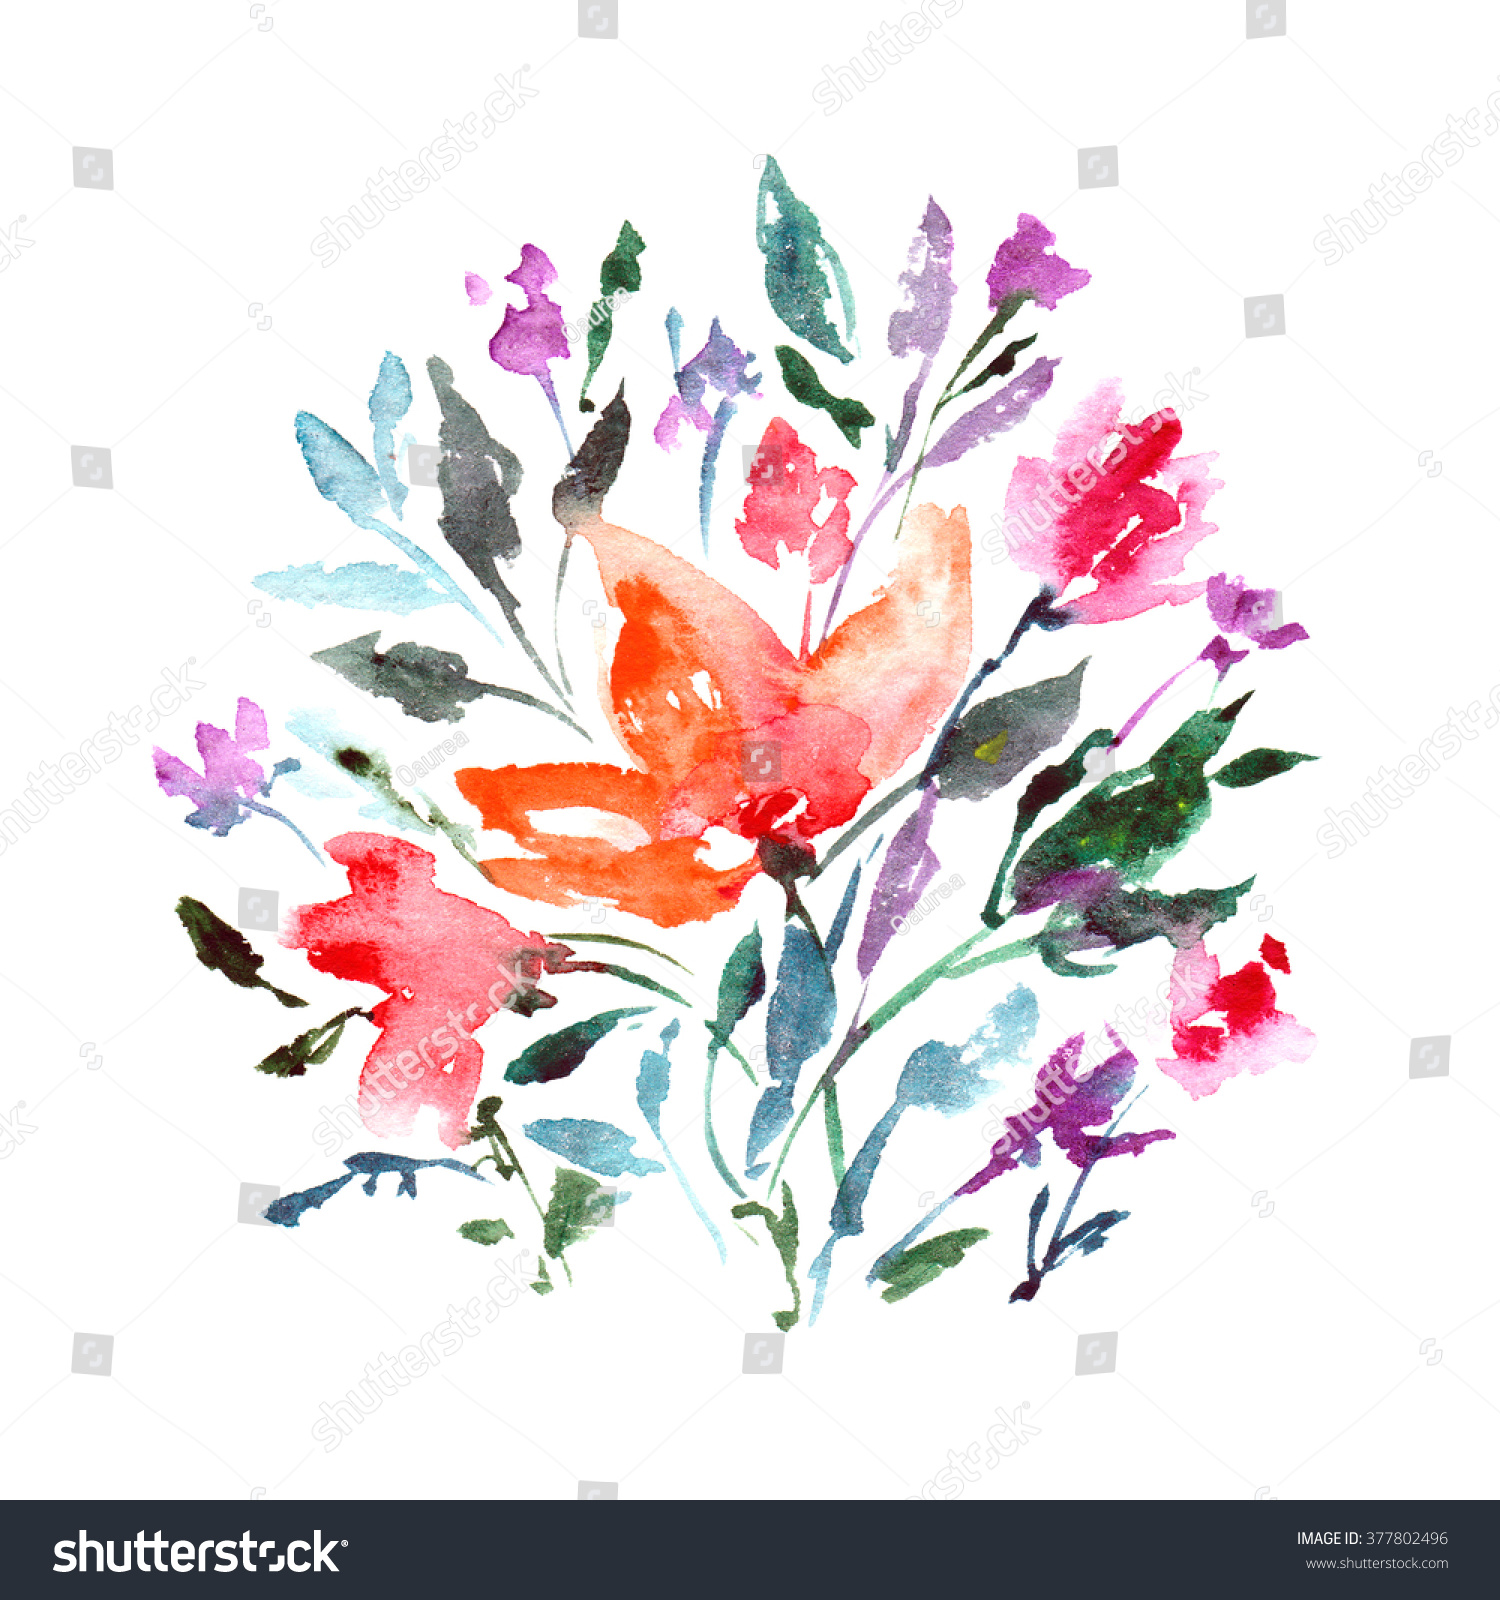 Flowers Watercolor Floral Background Floral Birthday Card Floral